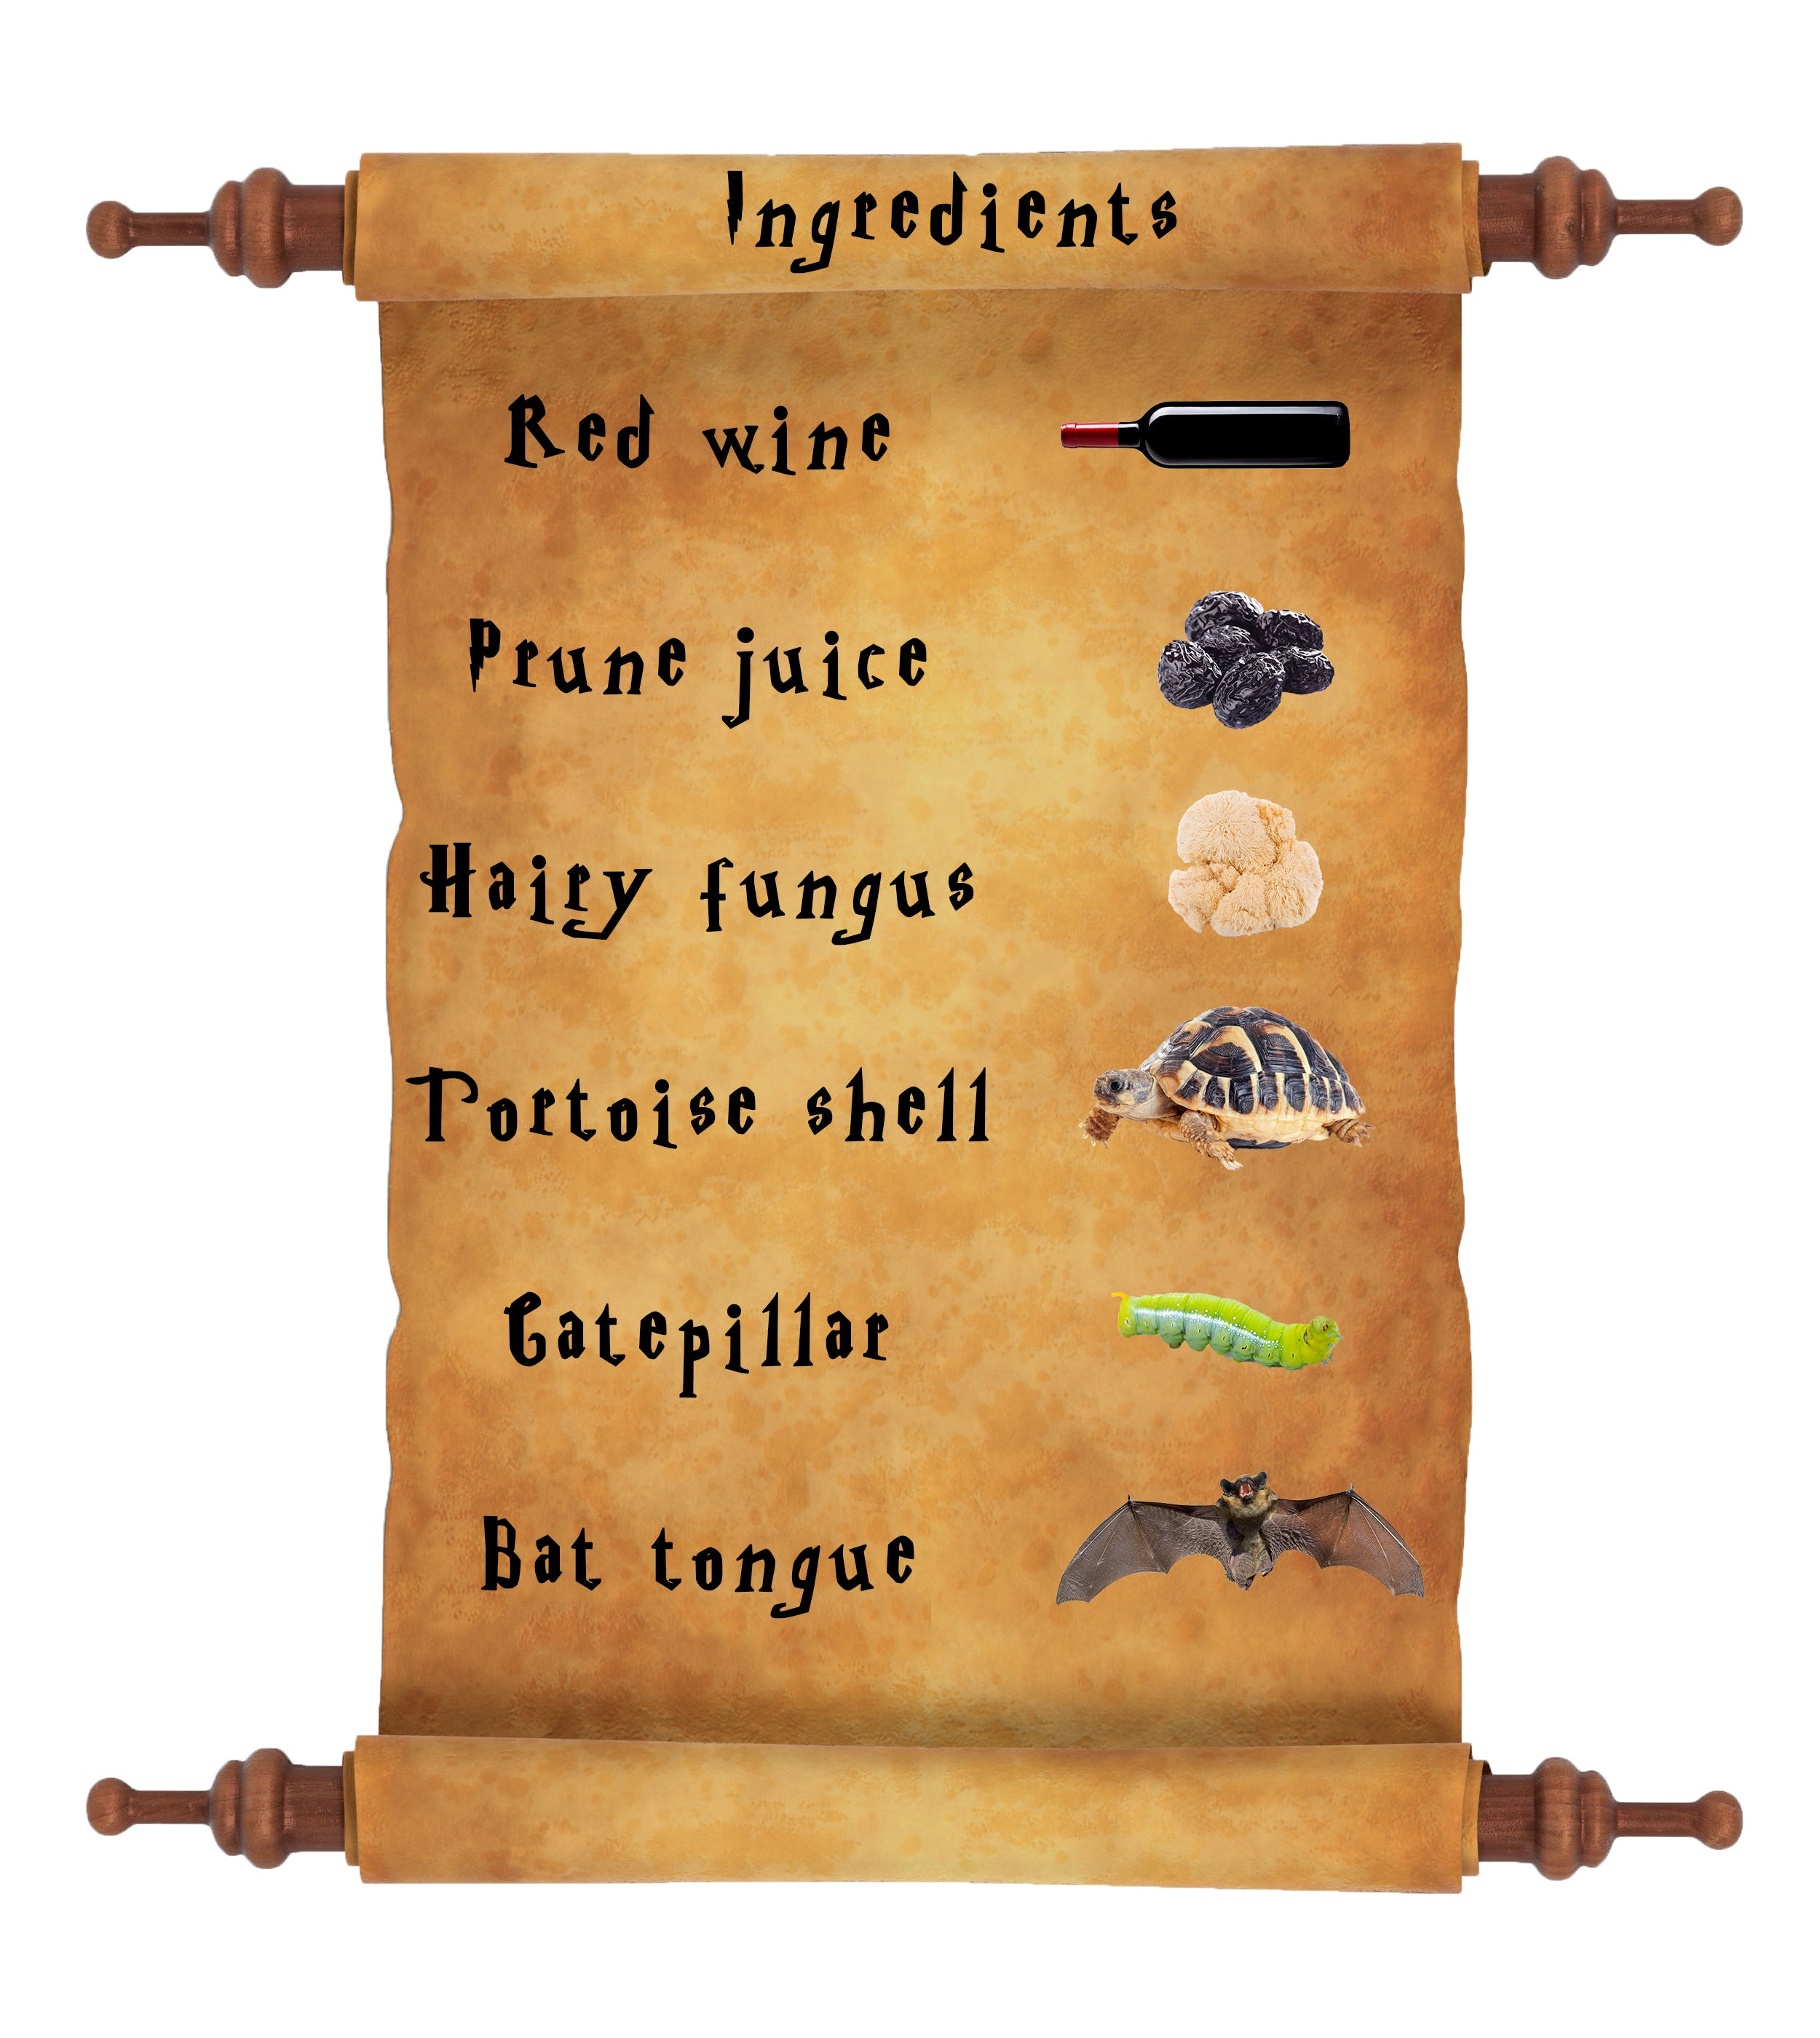 Harry Potter potion list - ageing potion ingredients